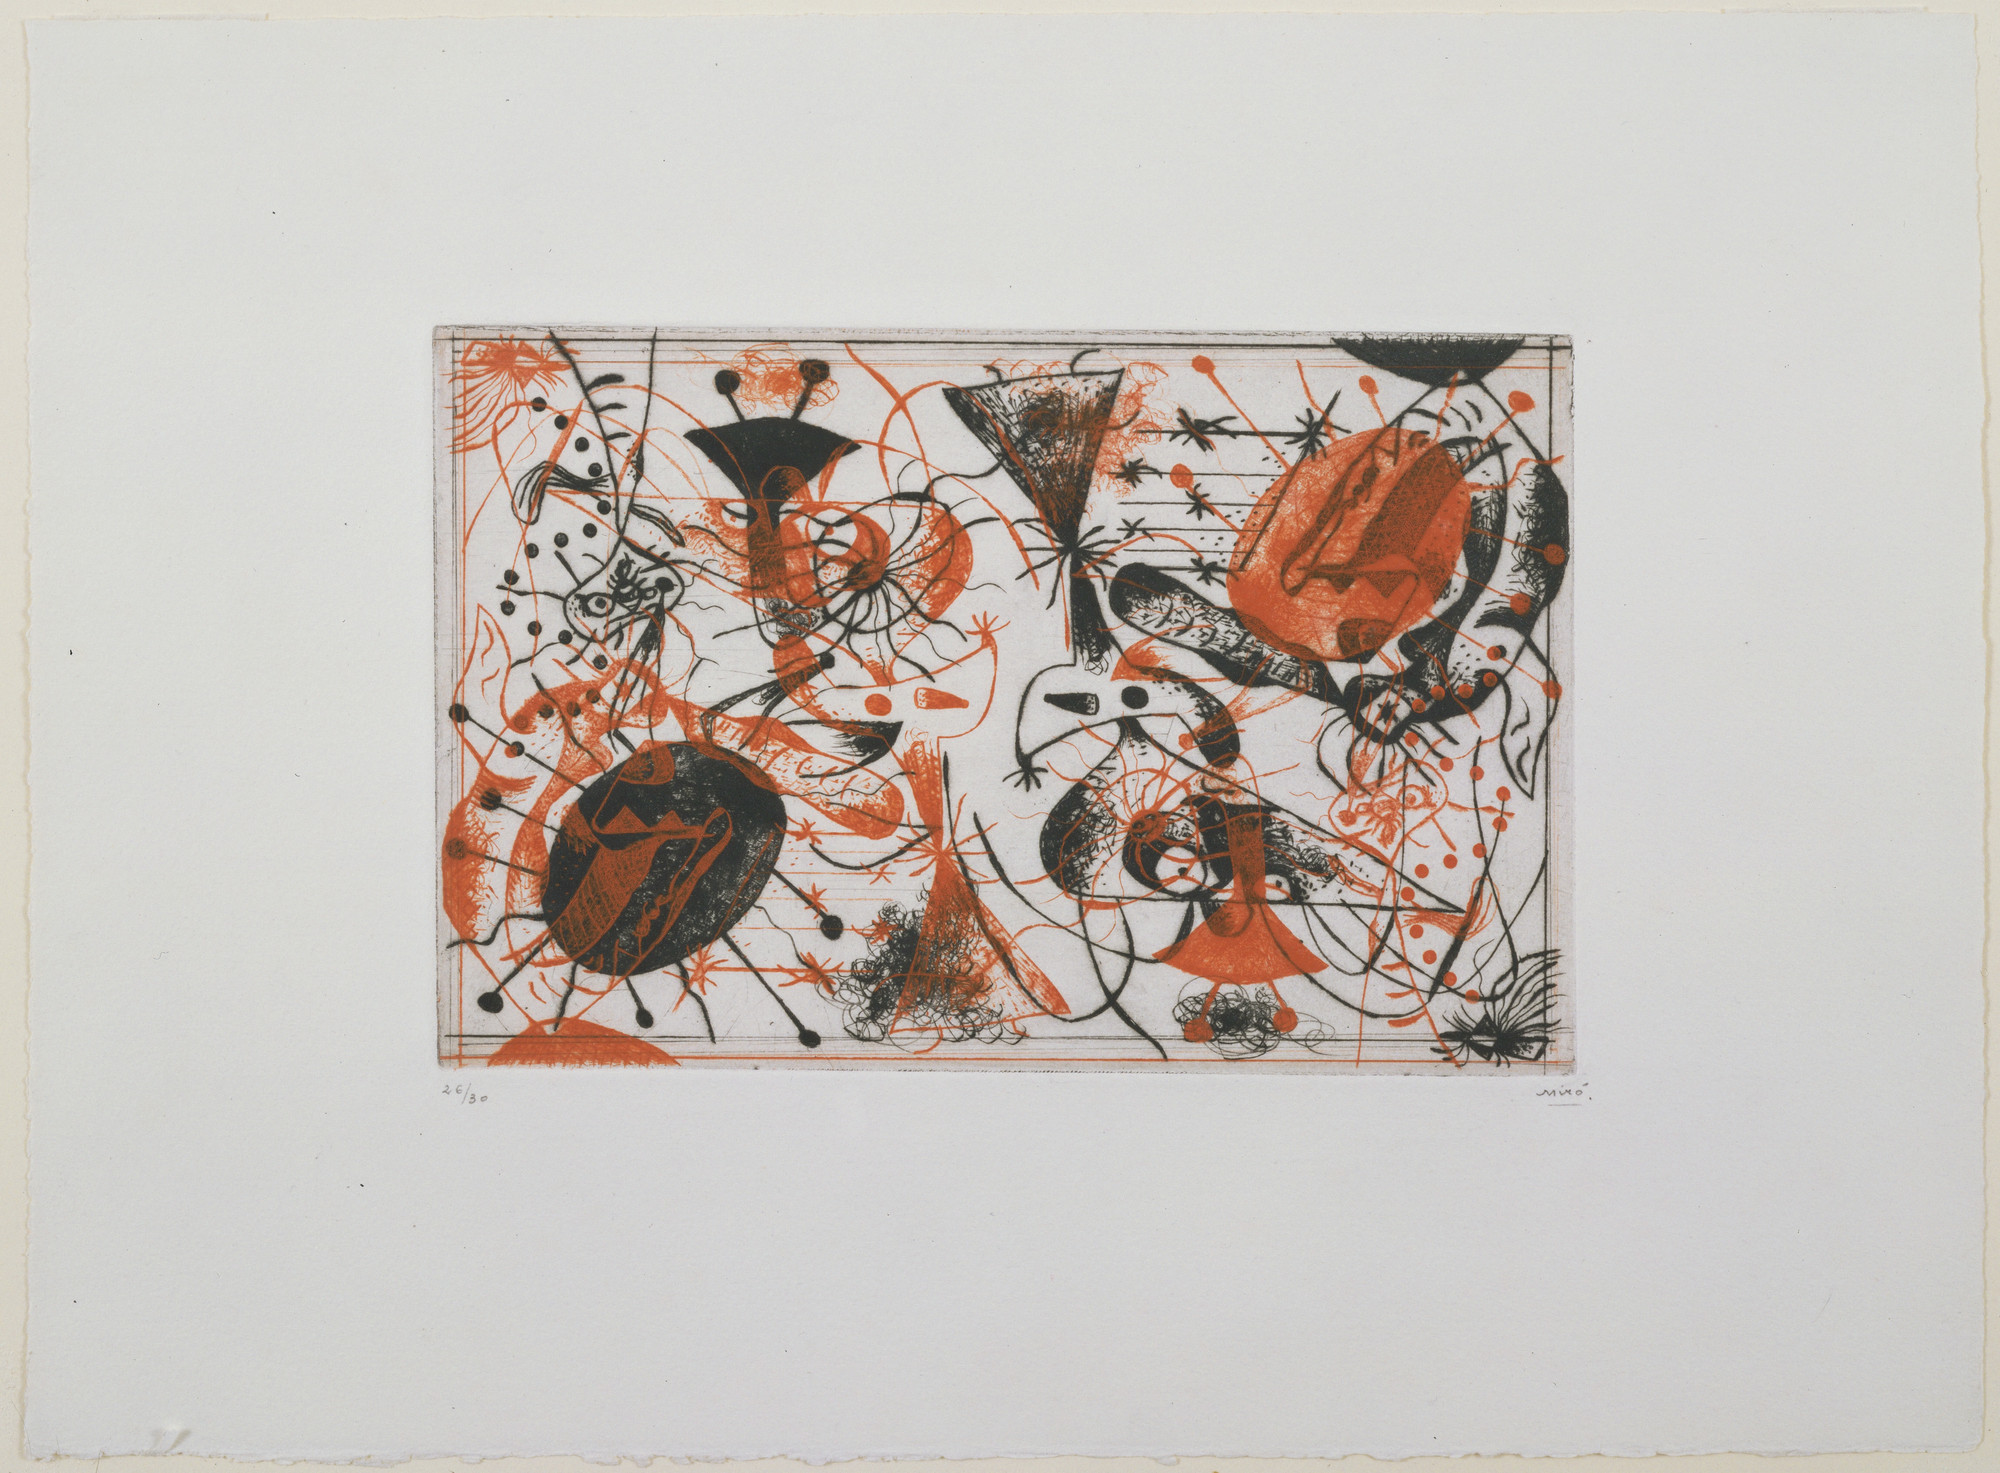 Joan Miró. Plate 8 from Black and Red Series (Série noire et rouge). 1938. Etching, 6 5/8 × 10 1/8ʺ (16.8 × 26.8 cm). Purchased with the Frances Keech Fund and funds given by Agnes Gund and Daniel Shapiro, Gilbert Kaplan, Jeanne C. Thayer, Reba and Dave Williams, Ann and Lee Fensterstock, Linda Barth Goldstein, Walter Bareiss, Mrs. Melville Wakeman Hall, Emily Rauh Pulitzer, and Mr. and Mrs. Herbert D. Schimmel. © 2016 Successió Miró / Artists Rights Society (ARS), New York / ADAGP, Paris